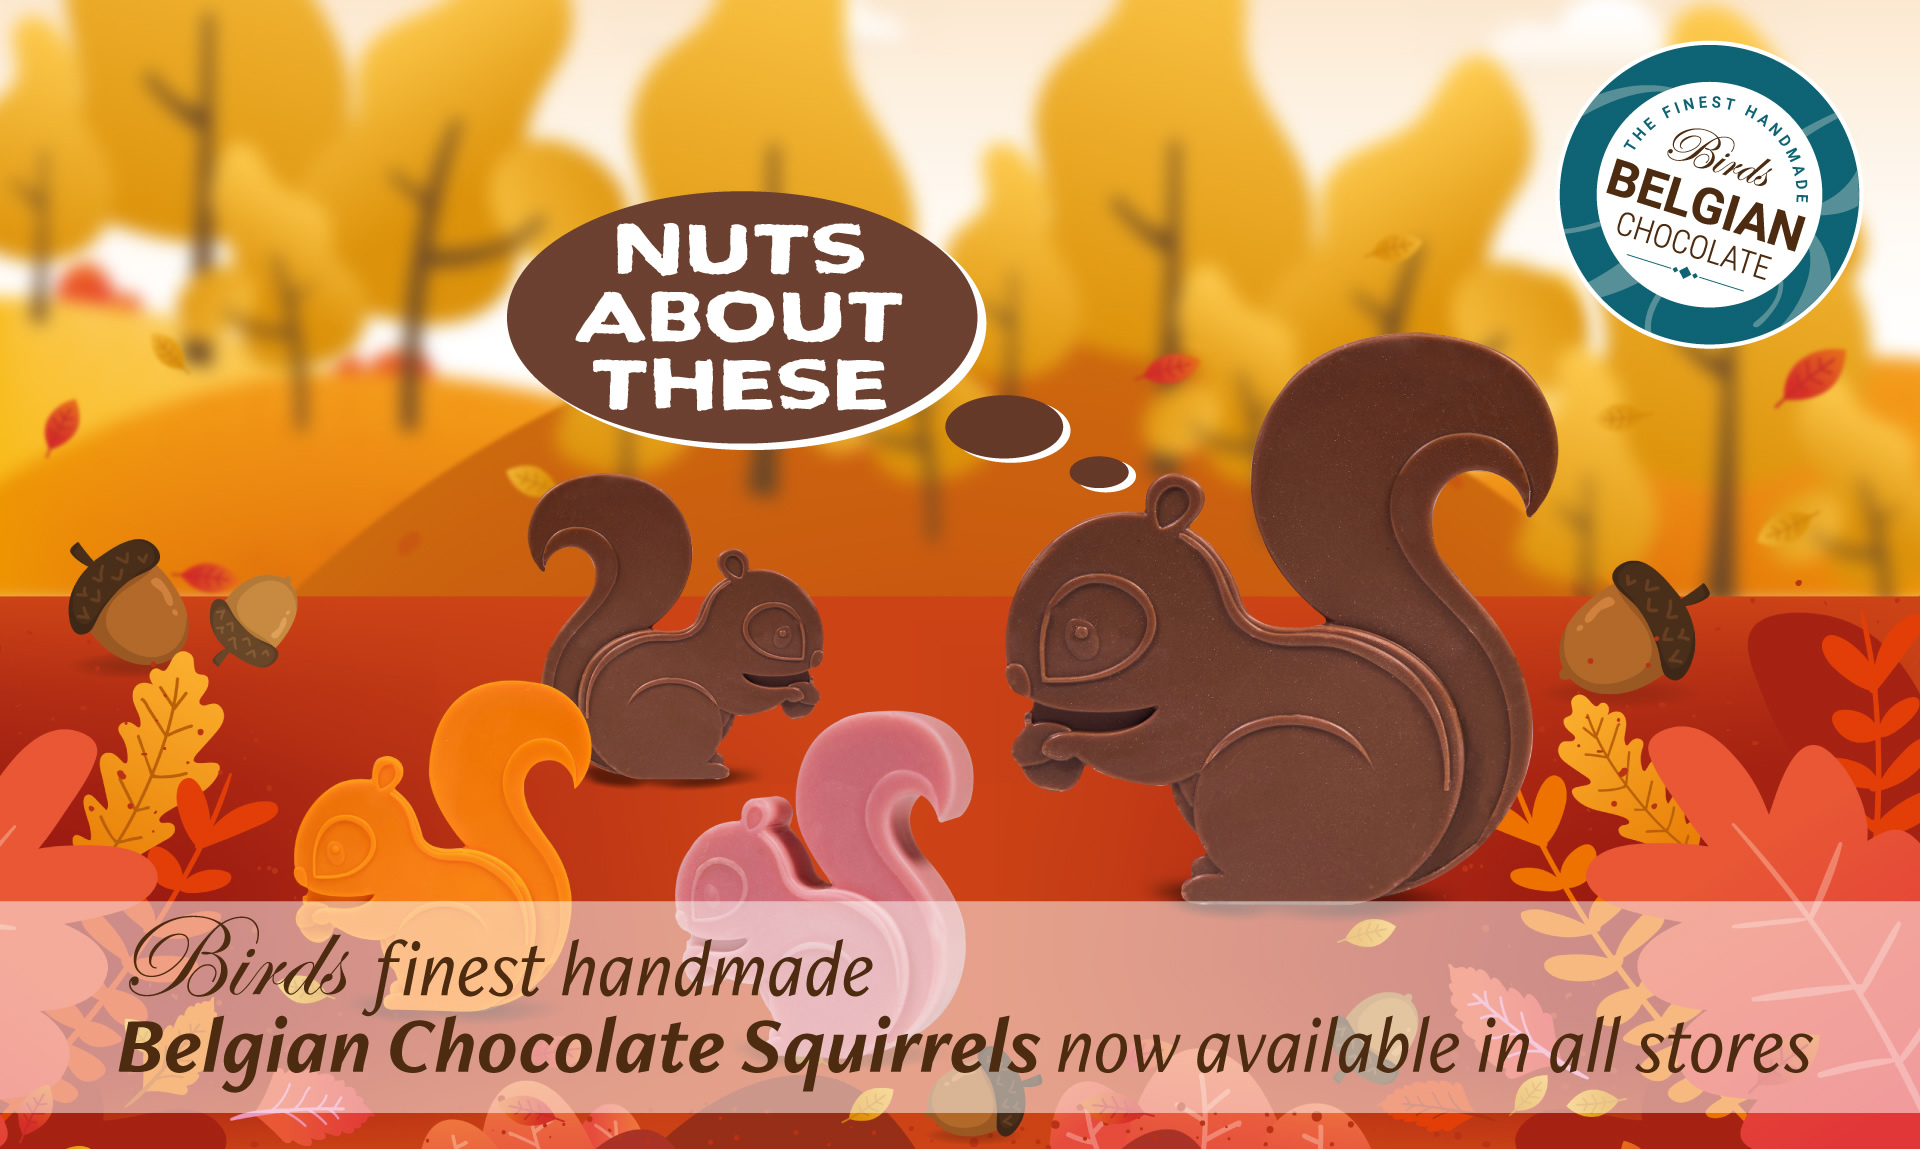 Birds finest handmade belgian chocolate squirrels now available in all stores